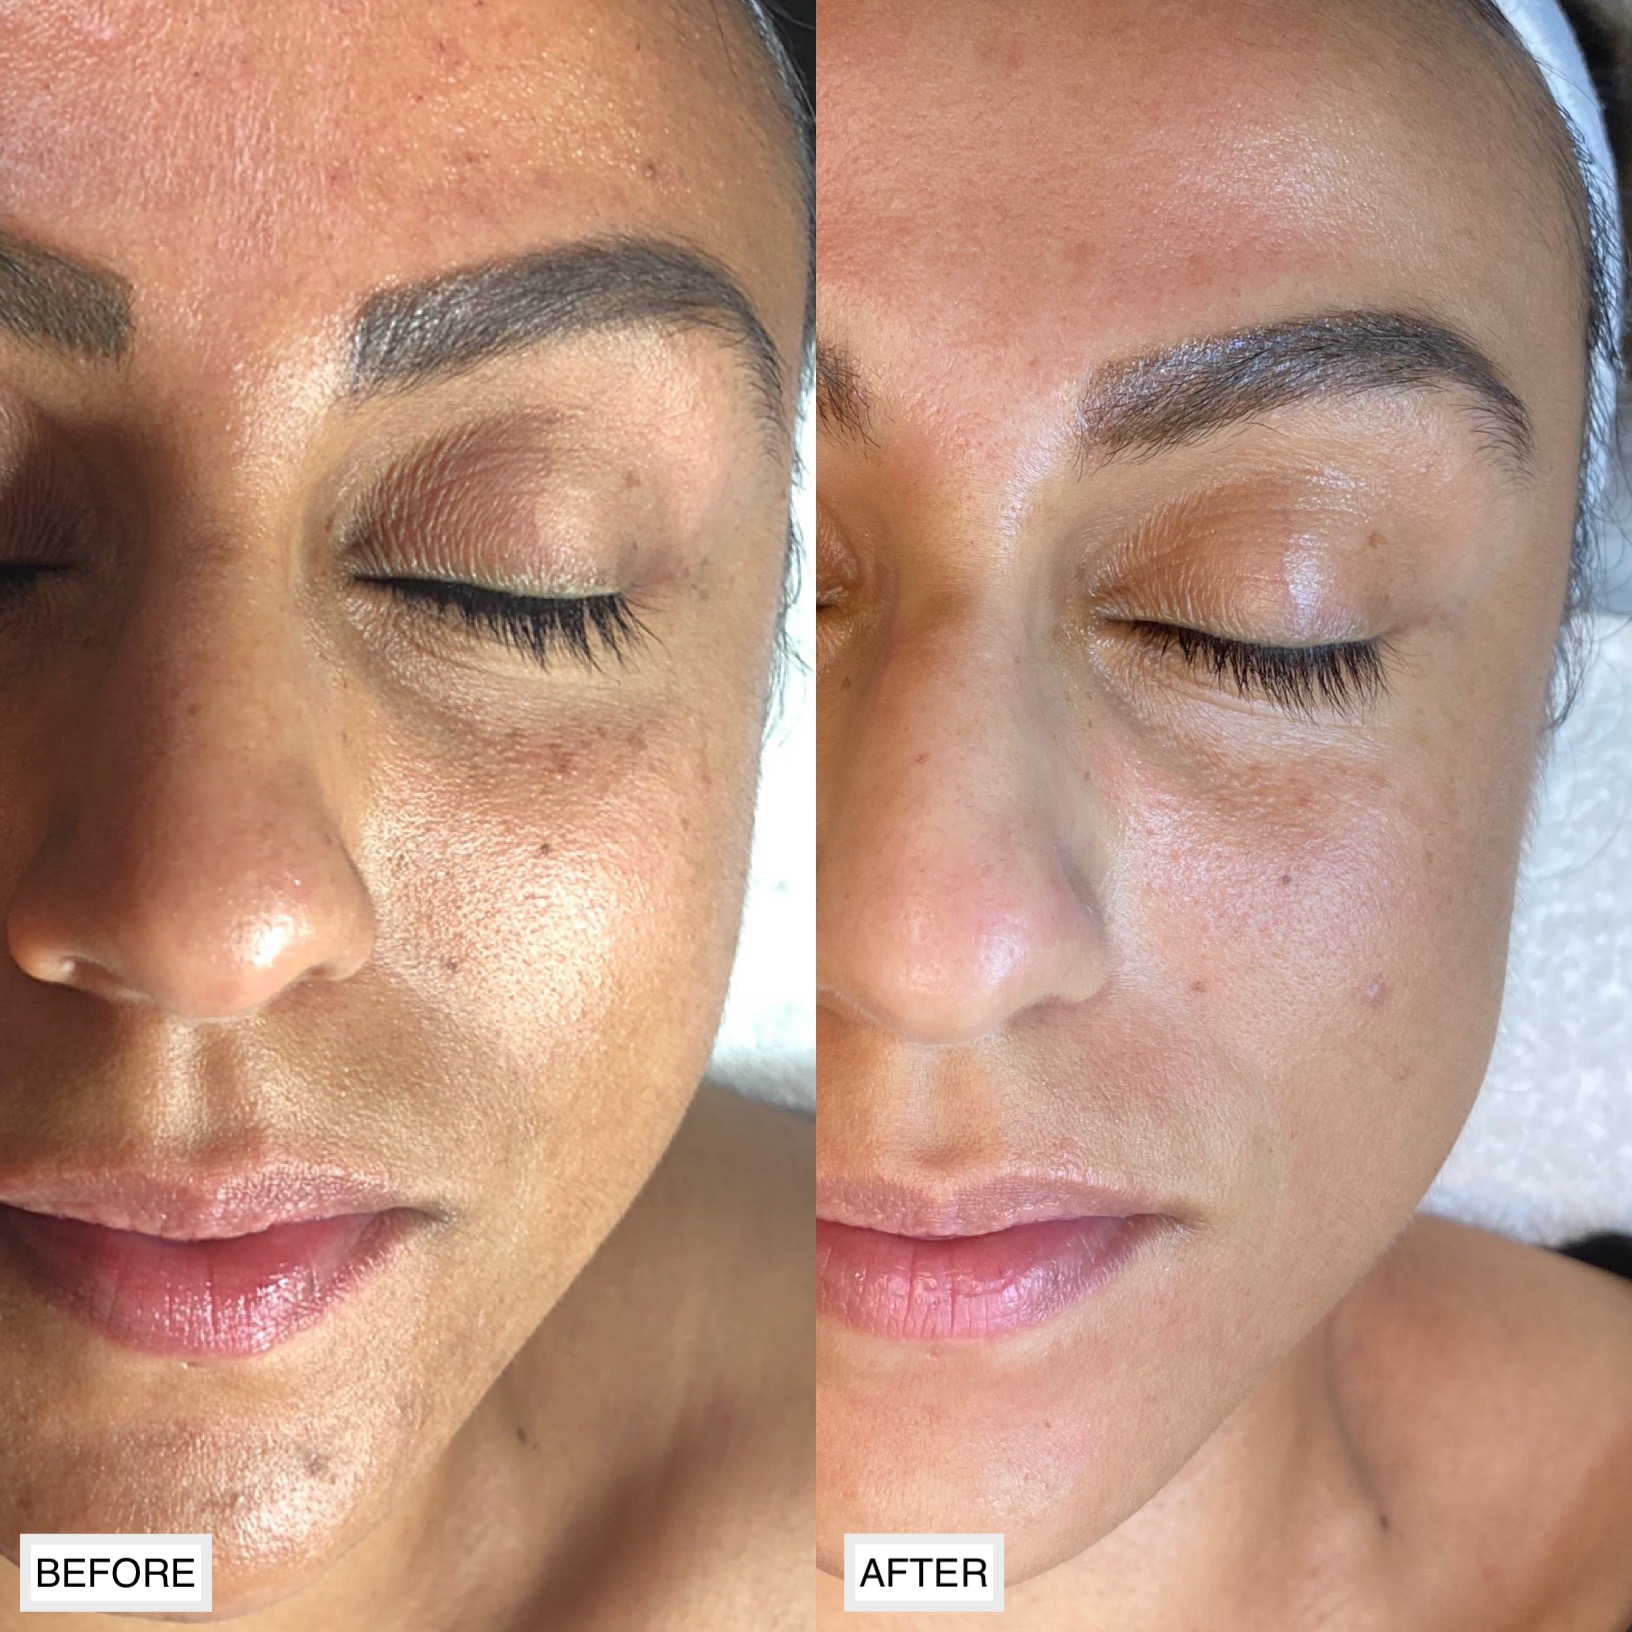 Before and after a series of facial treatments to soften this clients fine lines and wrinkles, plump the skin, and even the tone and texture of the skin.